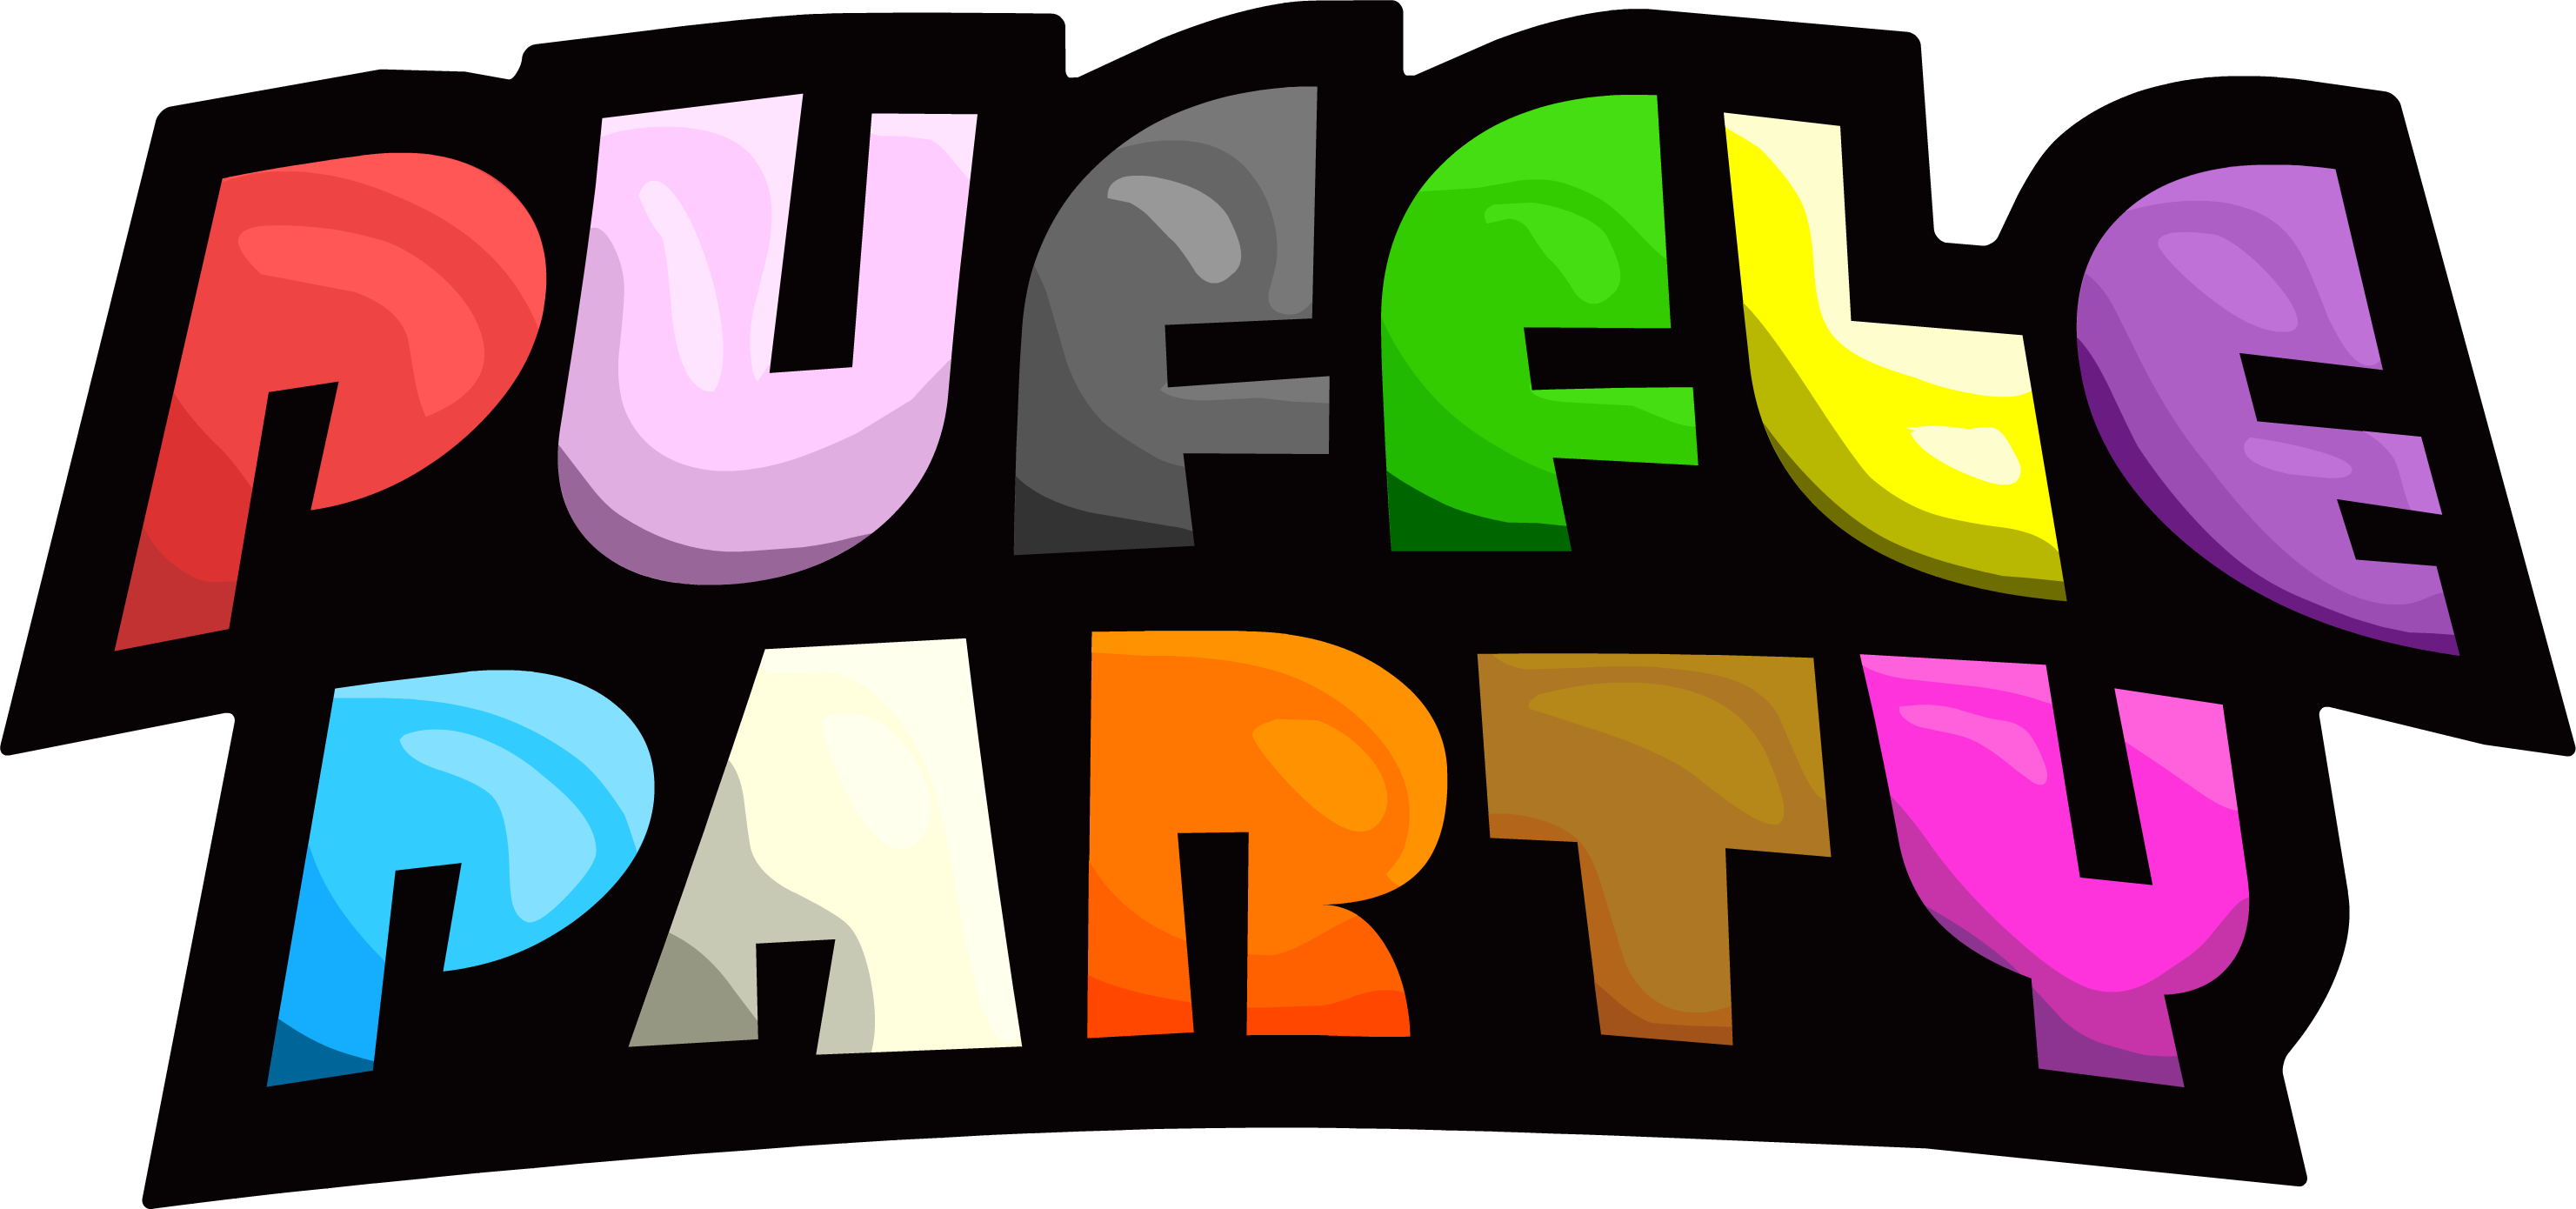 Club clipart party. List of parties and